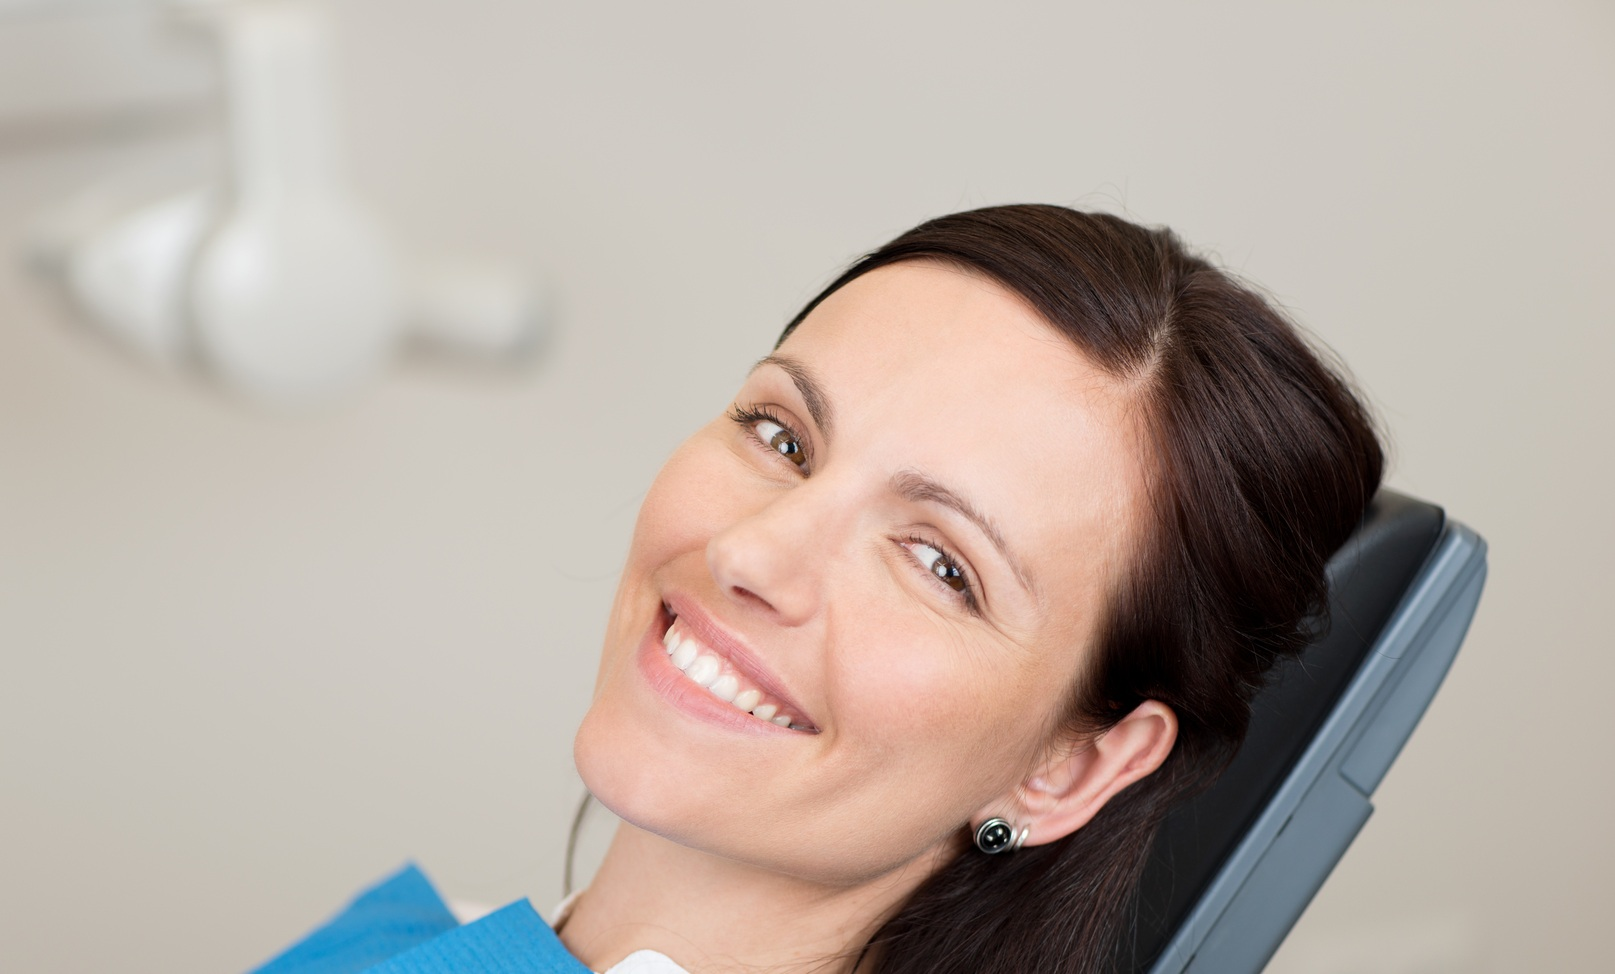 Specialized care - Do you want your smile done right? Dr. Summers has the experience, steady hand, and patience to get you your perfect smile.